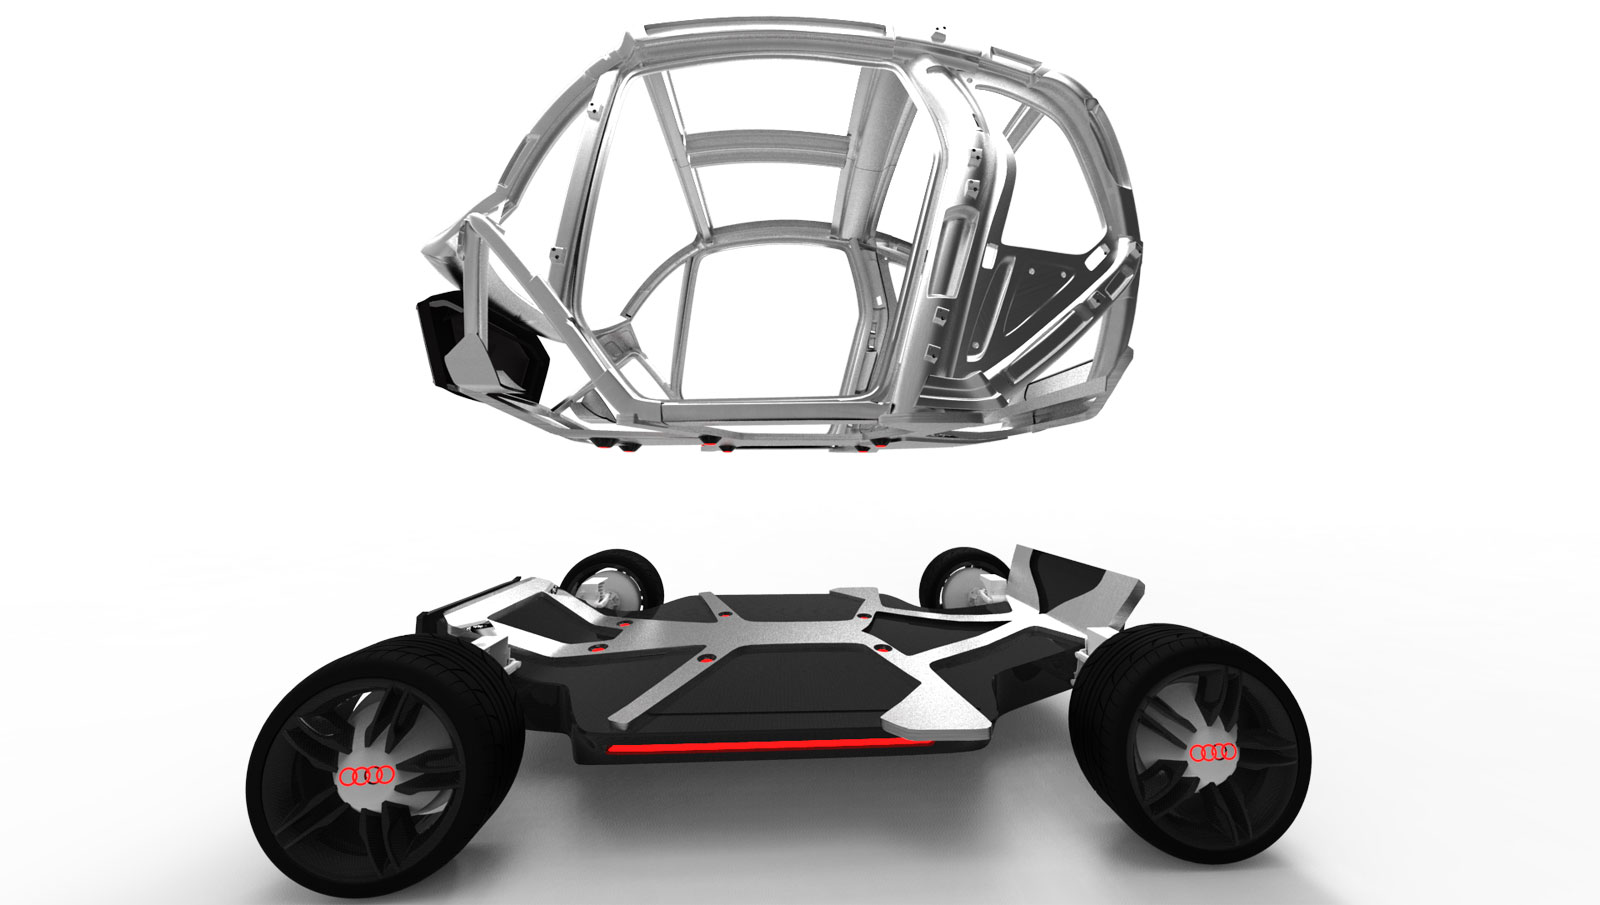 Design of car frame - The Vehicle Is Based On A Compact Version Of The Audi Space Frame Mounted On A Floor That Integrates The Battery Pack